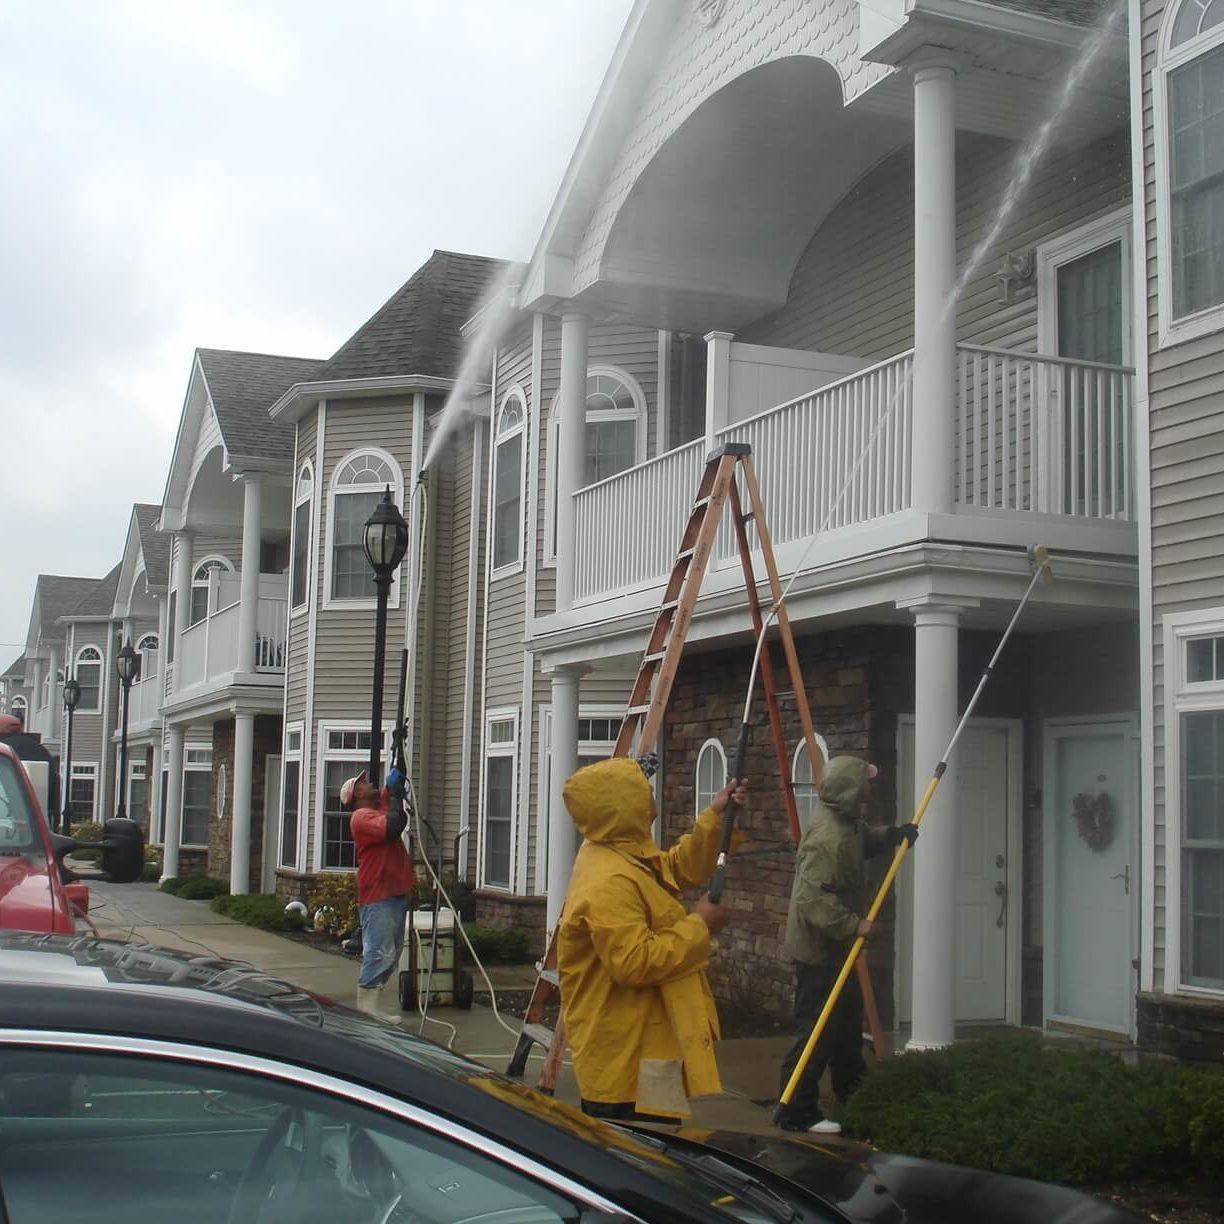 Your property deserves an exterior cleaning ally - and we're here to fill those shoes! Clean County proudly serves HOAs, condos, and multi-unit properties in the area with comprehensive exterior cleaning solutions. Complete Exterior Cleaning Services Managing a property is a big job - and we're here to make it that much easier. With our one-stop-shop solutions, you can count on the best quality in: townhouse power washing new york Building Washing We have capability for power washing and soft washing, which allows us to bring the best clean to any exterior surface. We remove stains, buildup, and mold and mildew from virtually every material, including: Vinyl Brick Stucco Wood Cedar The Area's Top Provider Of Quality Parking Garage Cleaning & Maintenance Services. Parking Garages should be cleaned in the Northeast at least once a year, and in high traffic garages twice a year, due to the salts and other contaminants that get into the garage surfaces. They eventually get absorbed into the concrete parking surfaces and soon will cause the rebar to rot out. When this happens the concrete begins to leak,crack and in the worse case scenario the garage itself can be condemned. We use state of the art hot and cold water powerwashing machines ranging up to 4000 PSI with up to 200+ degree water, surface machines and any cleaning solutions needed for all parking garage cleaning. Our knowledgeable staff is experienced on how to lighten or when possible remove stains completely. Each Parking Garage cleaning is approached based upon the existing conditions, and we will use the correct products and methods specific to your facility's cleaning and maintenance requirements. Concrete Cleaning Our hot water power washing solution is the most effective way to give your property a facelift. We remove chewing gum, stains, dirt, and other imperfections from your: Parking Lot Sidewalk Patio Entryway Driveway house pressure washing new york Roof Cleaning A clean roof completes your property